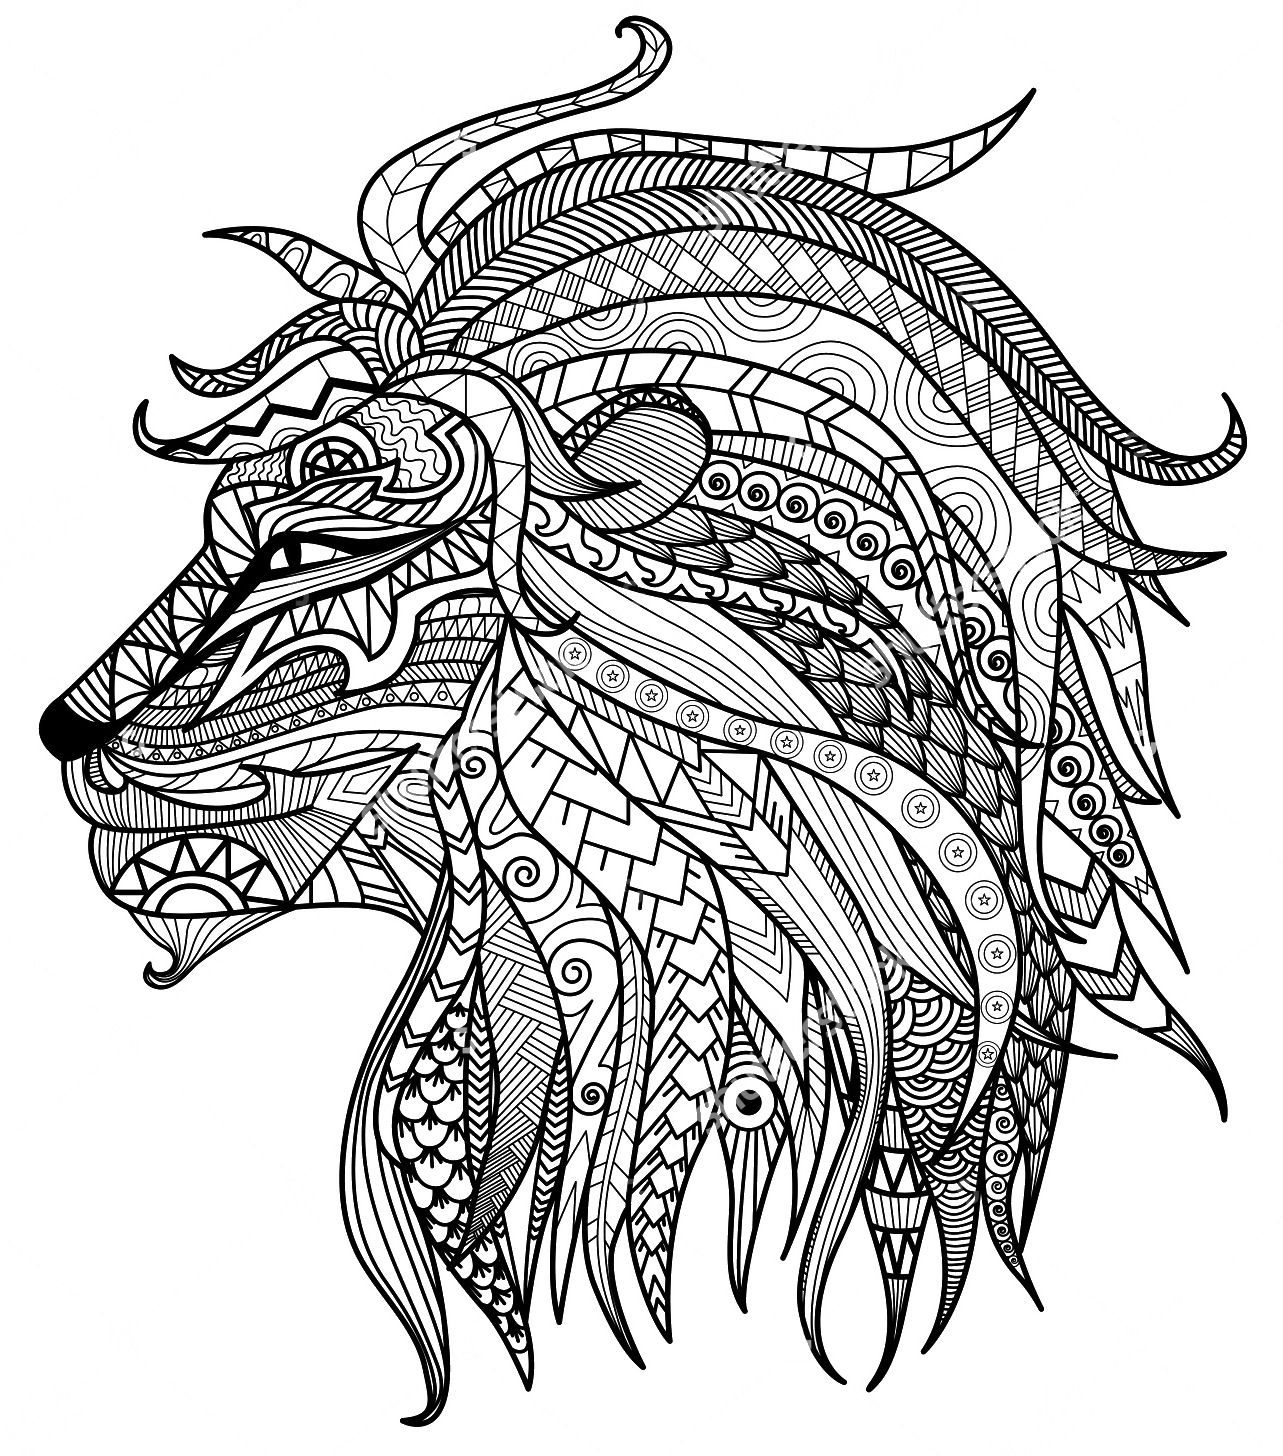 Africa Lion Head Africa Coloring Pages For Adults Just Color